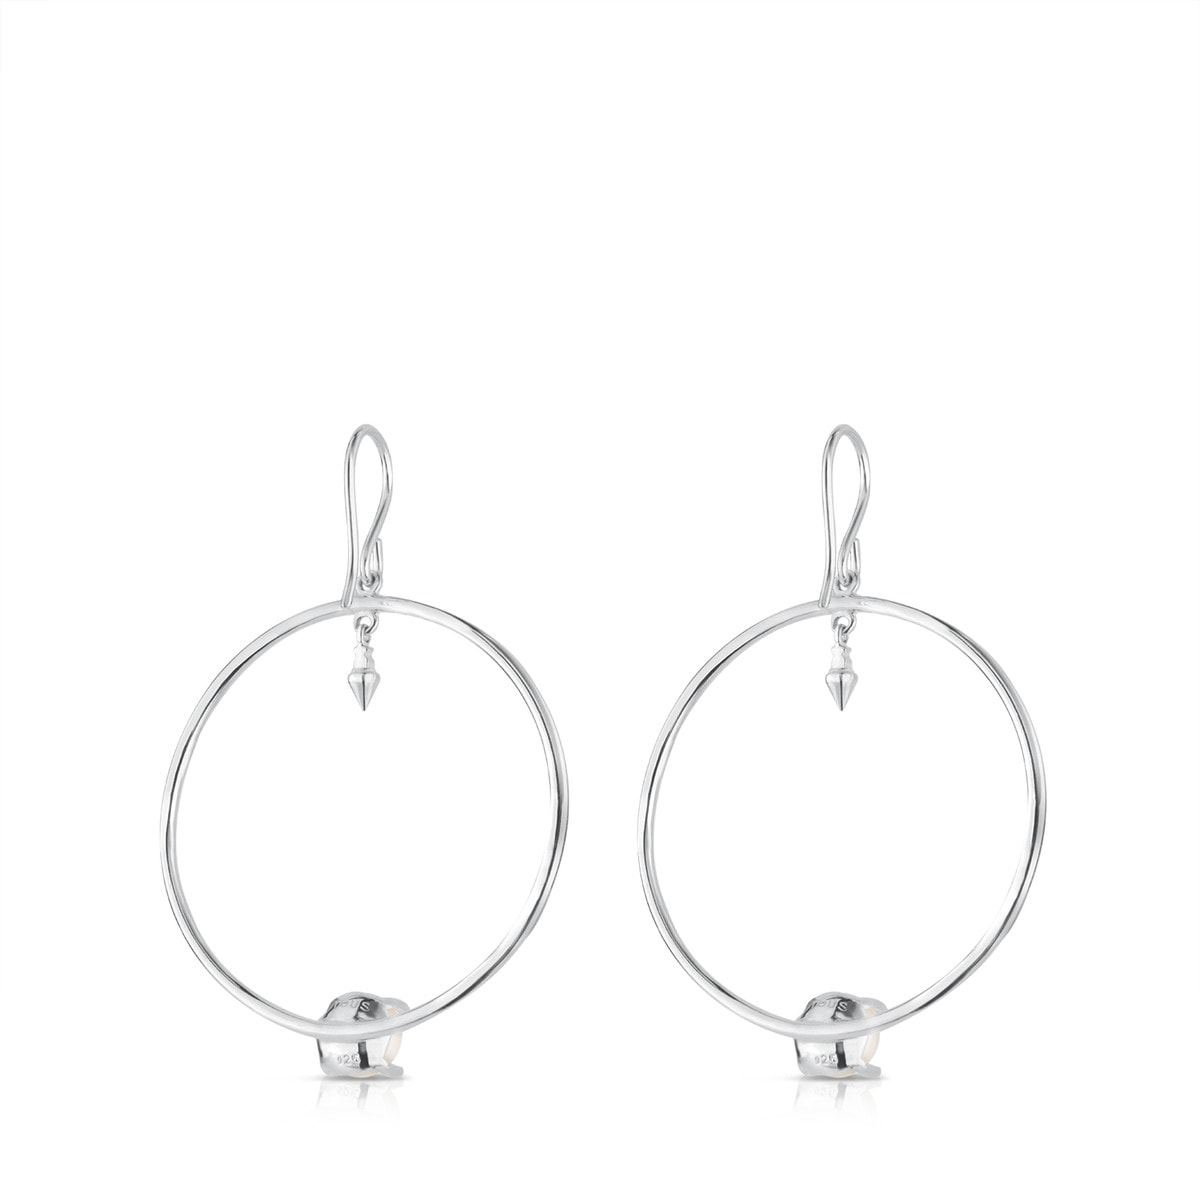 Silver Hendel Earrings